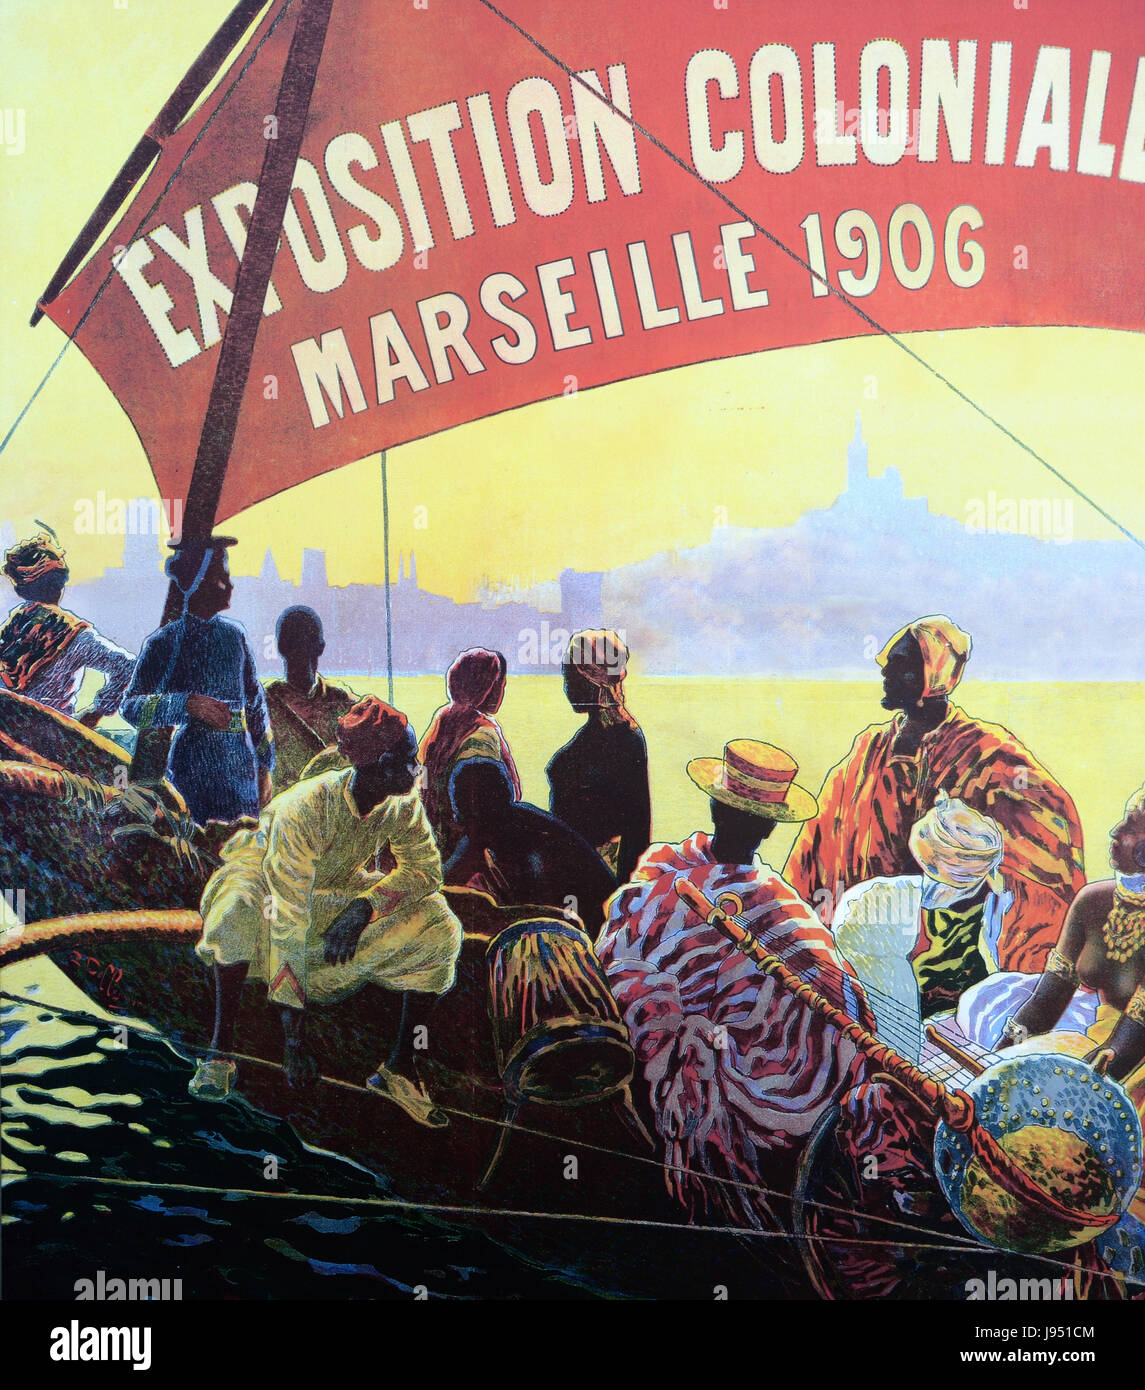 Vintage Advert for the Colonial Exhibition in Marseille 1906 France - Stock Image